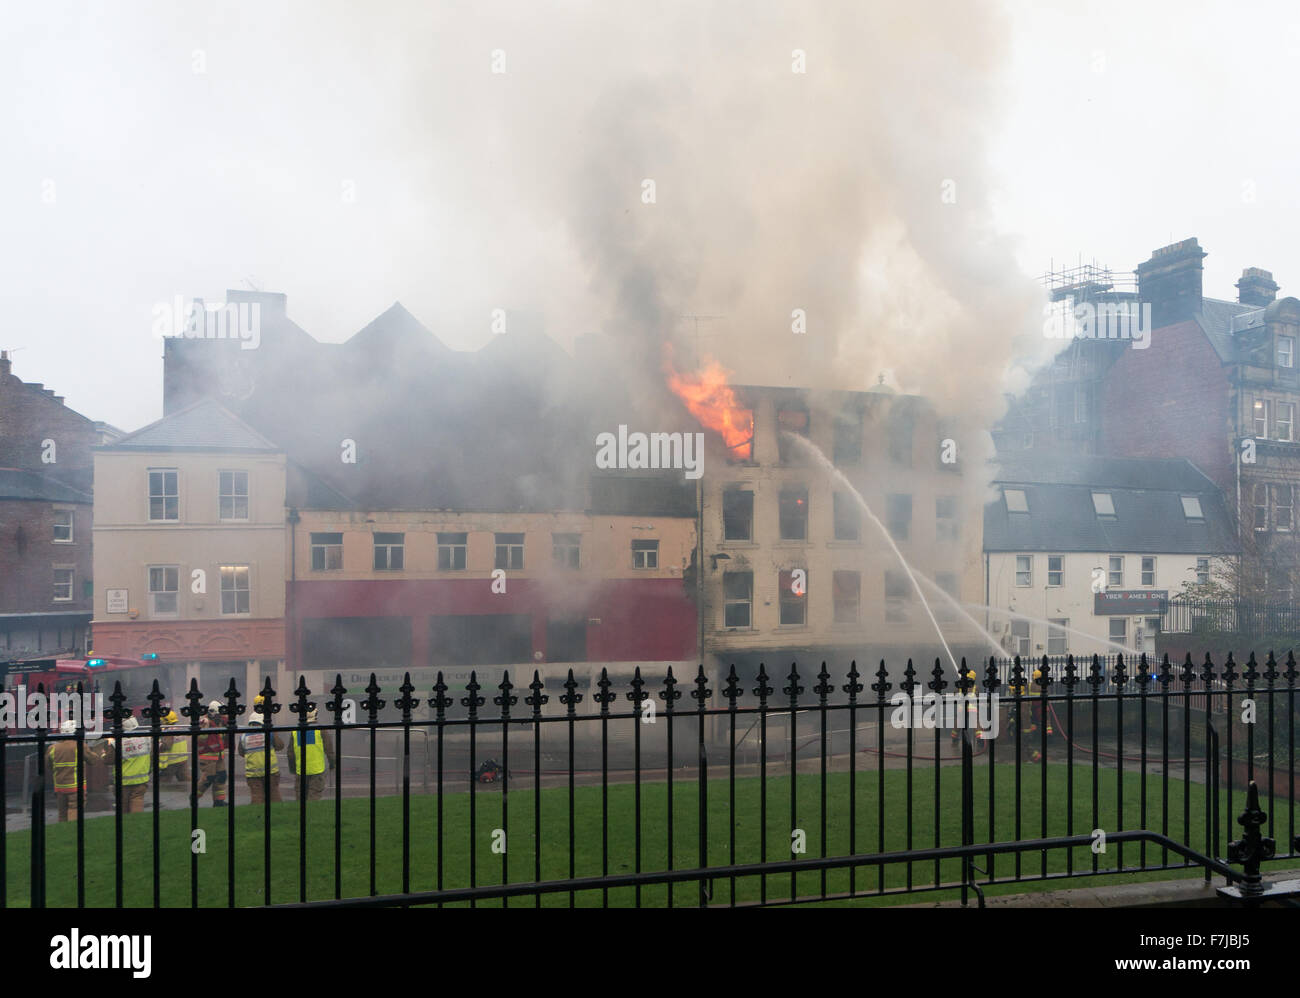 newcastle-upon-tyne-uk-1st-dec-2015-fire